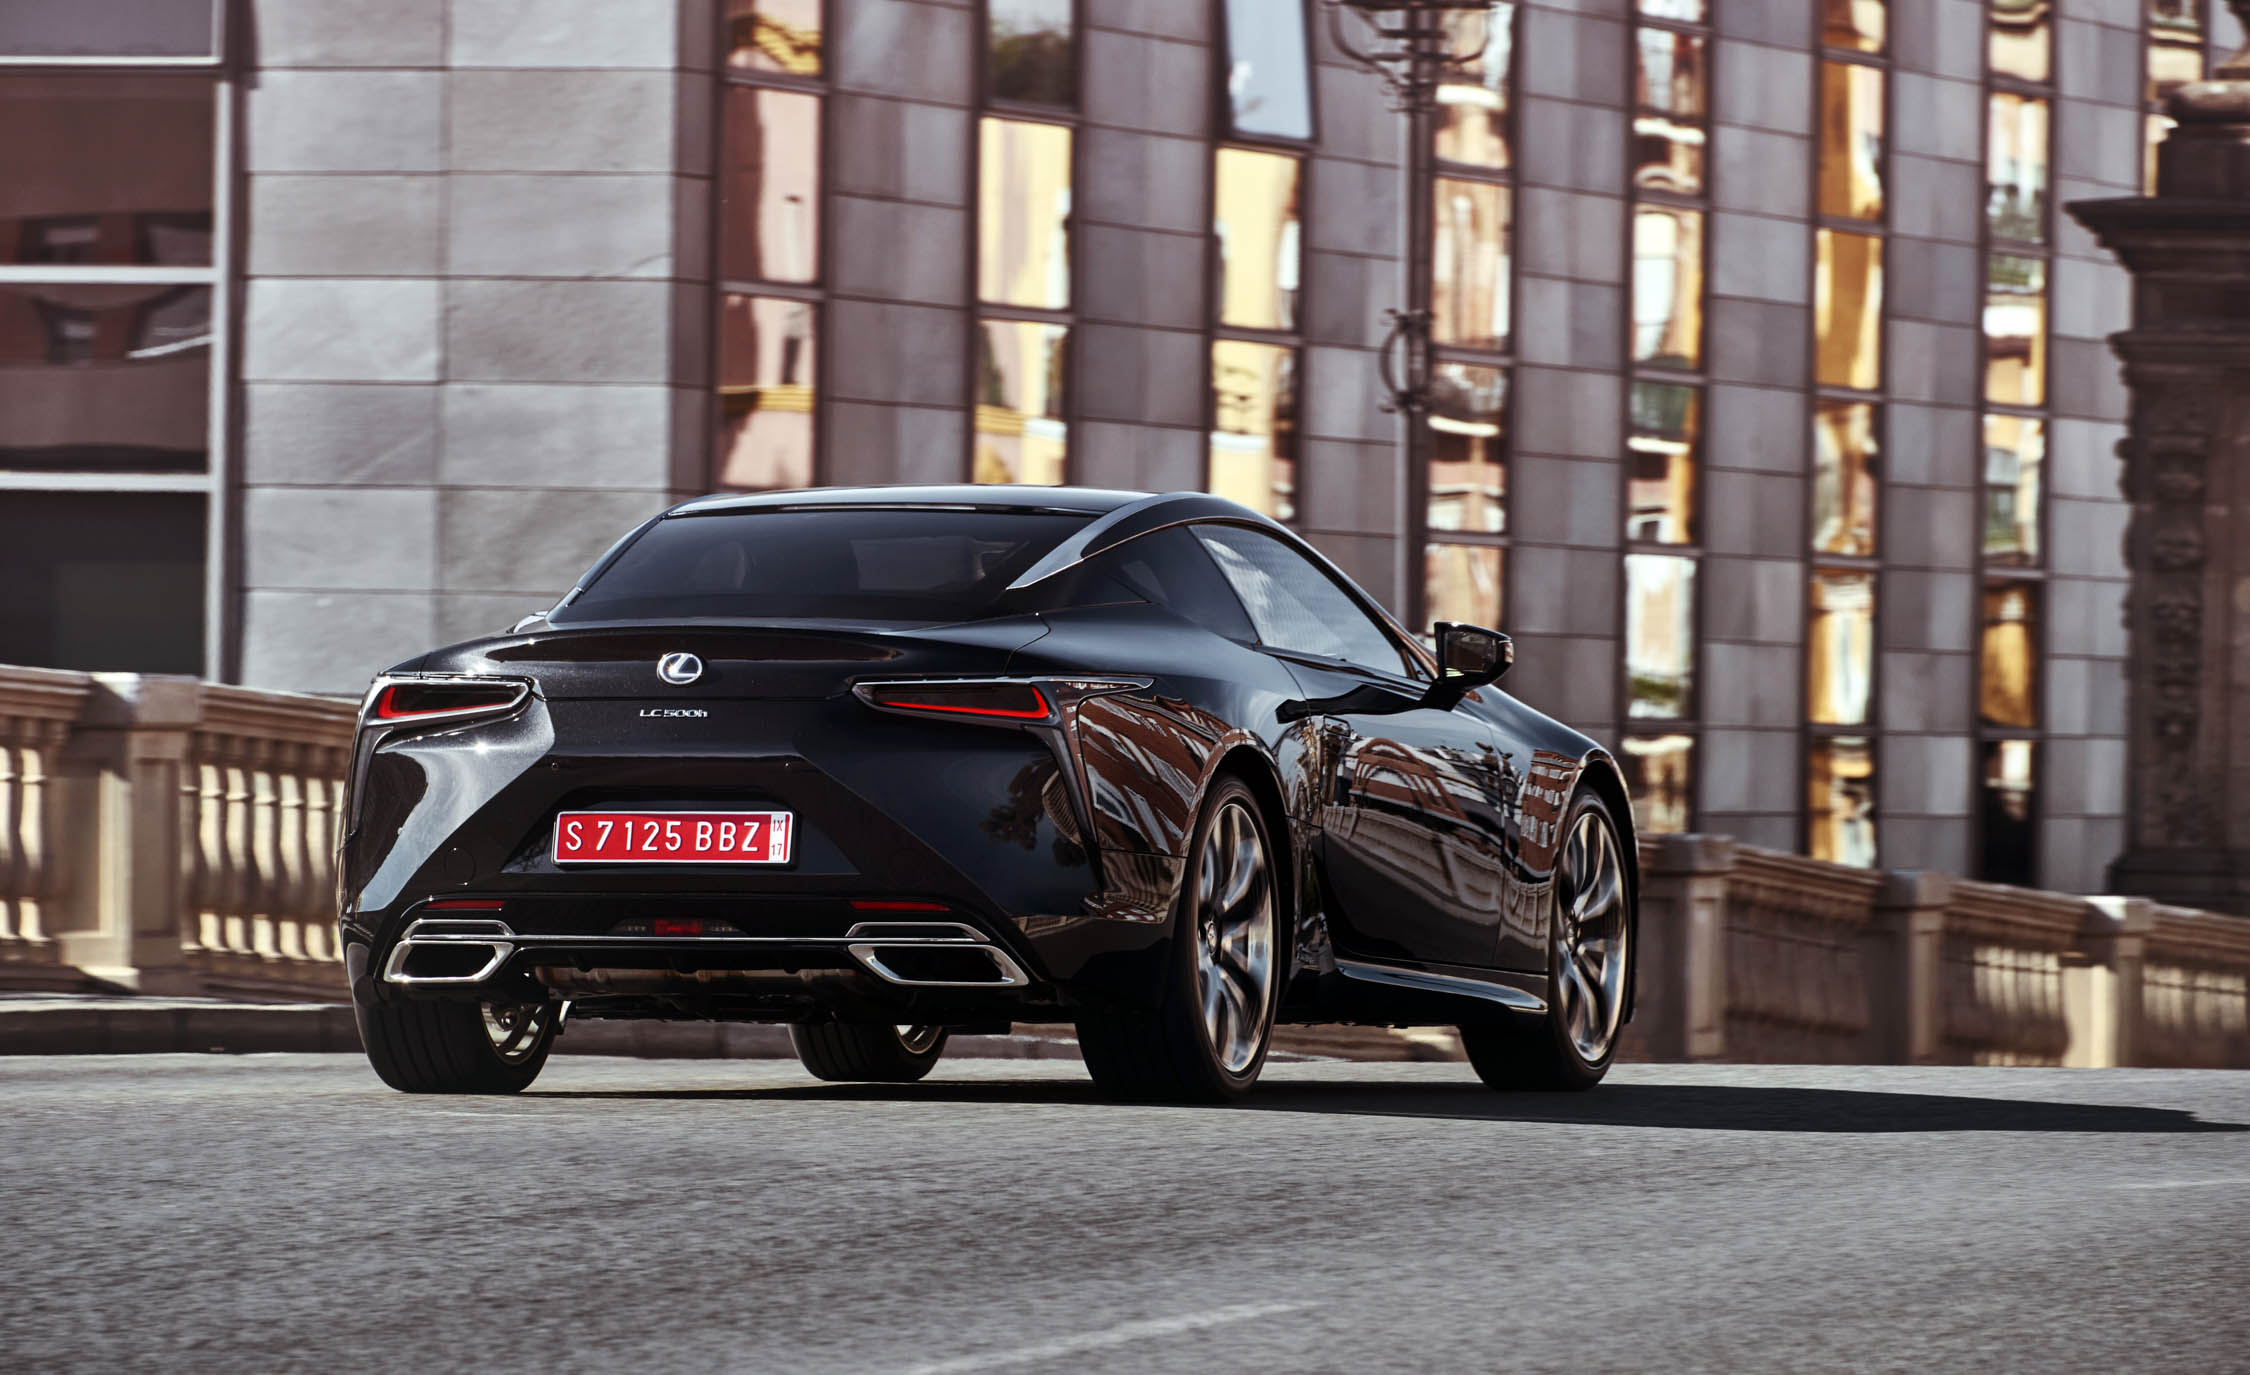 2018 Lexus Lc 500h Black Rear Corner (View 50 of 84)